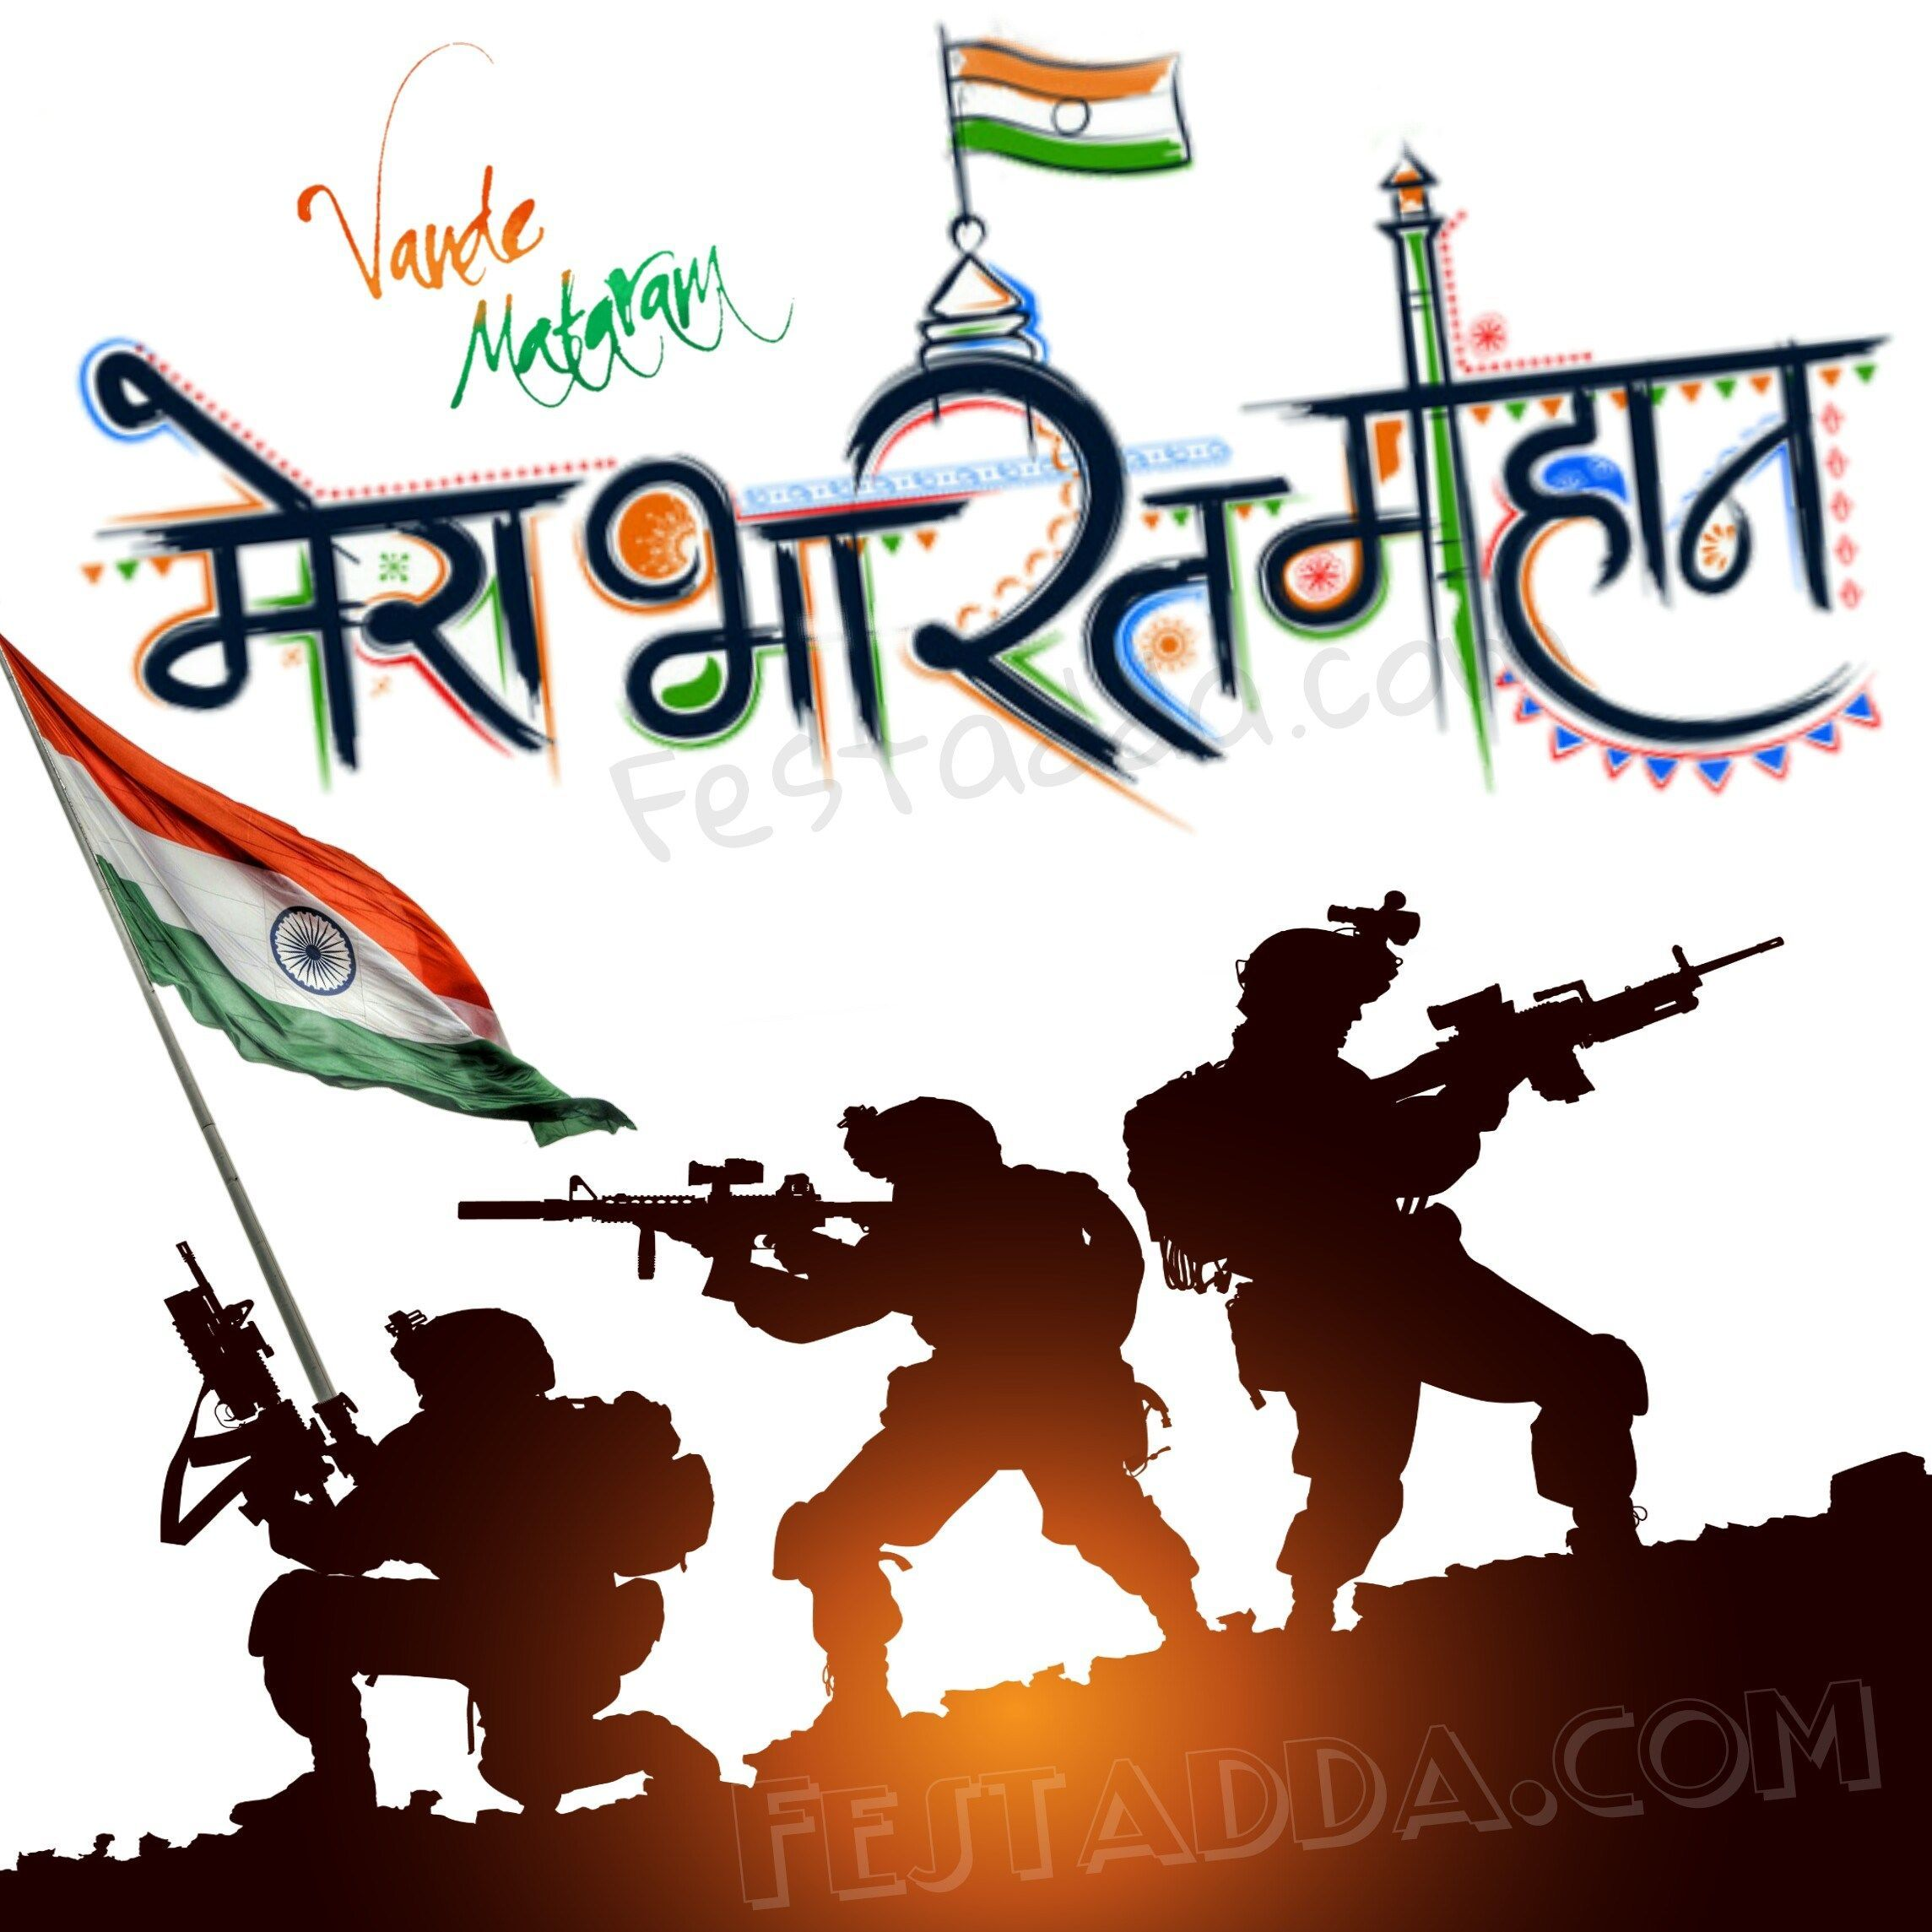 Happy Republic Day In 2021 Indian Army Wallpapers Indian Flag Wallpaper Army Images 26 january 2021 indian army image